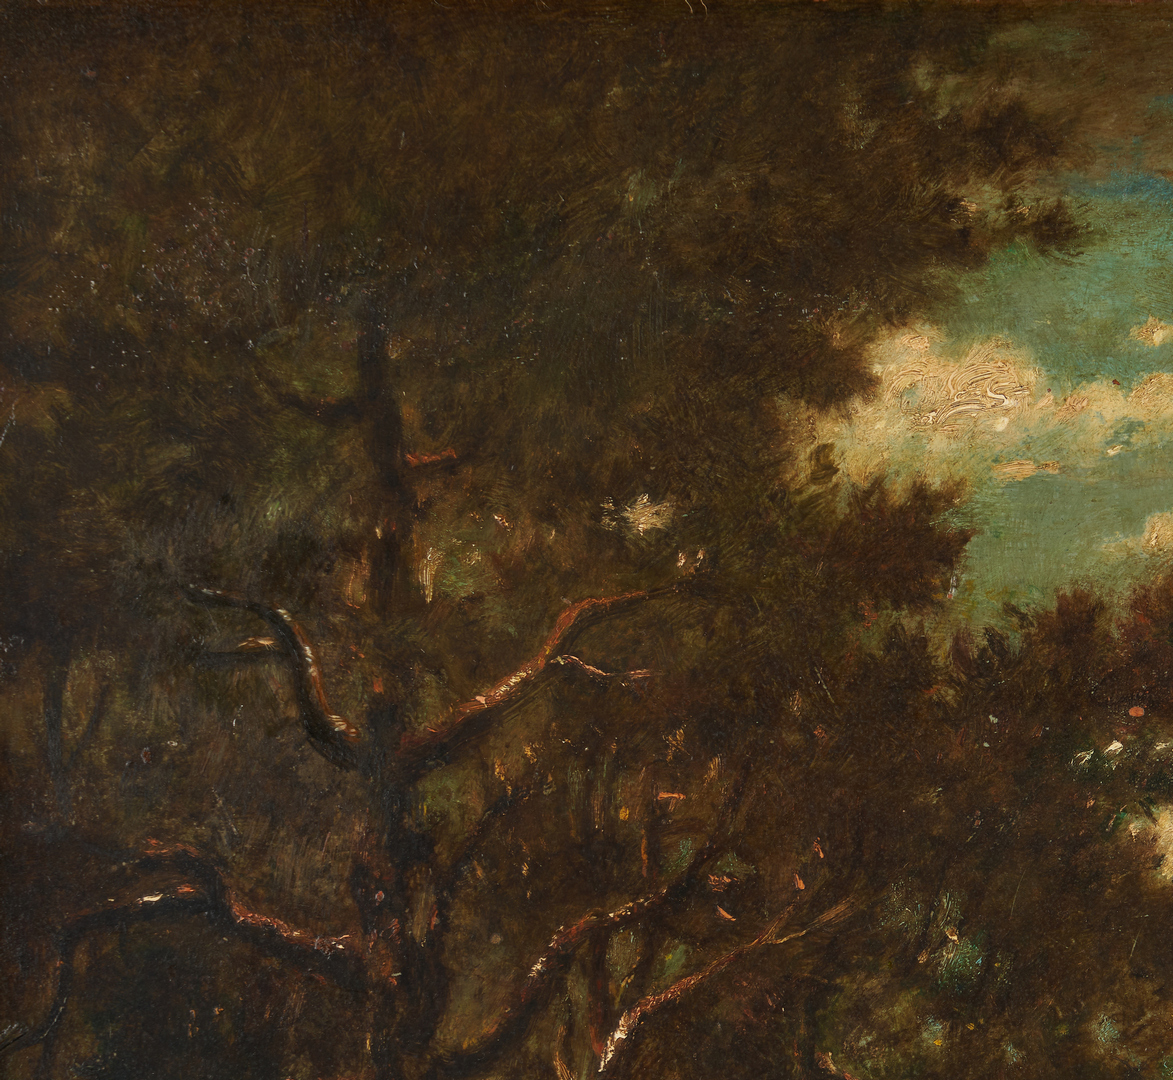 Lot 299: Signed Barbizon Landscape O/P, Titled Lisiere de Foret (Edge of the Forest)